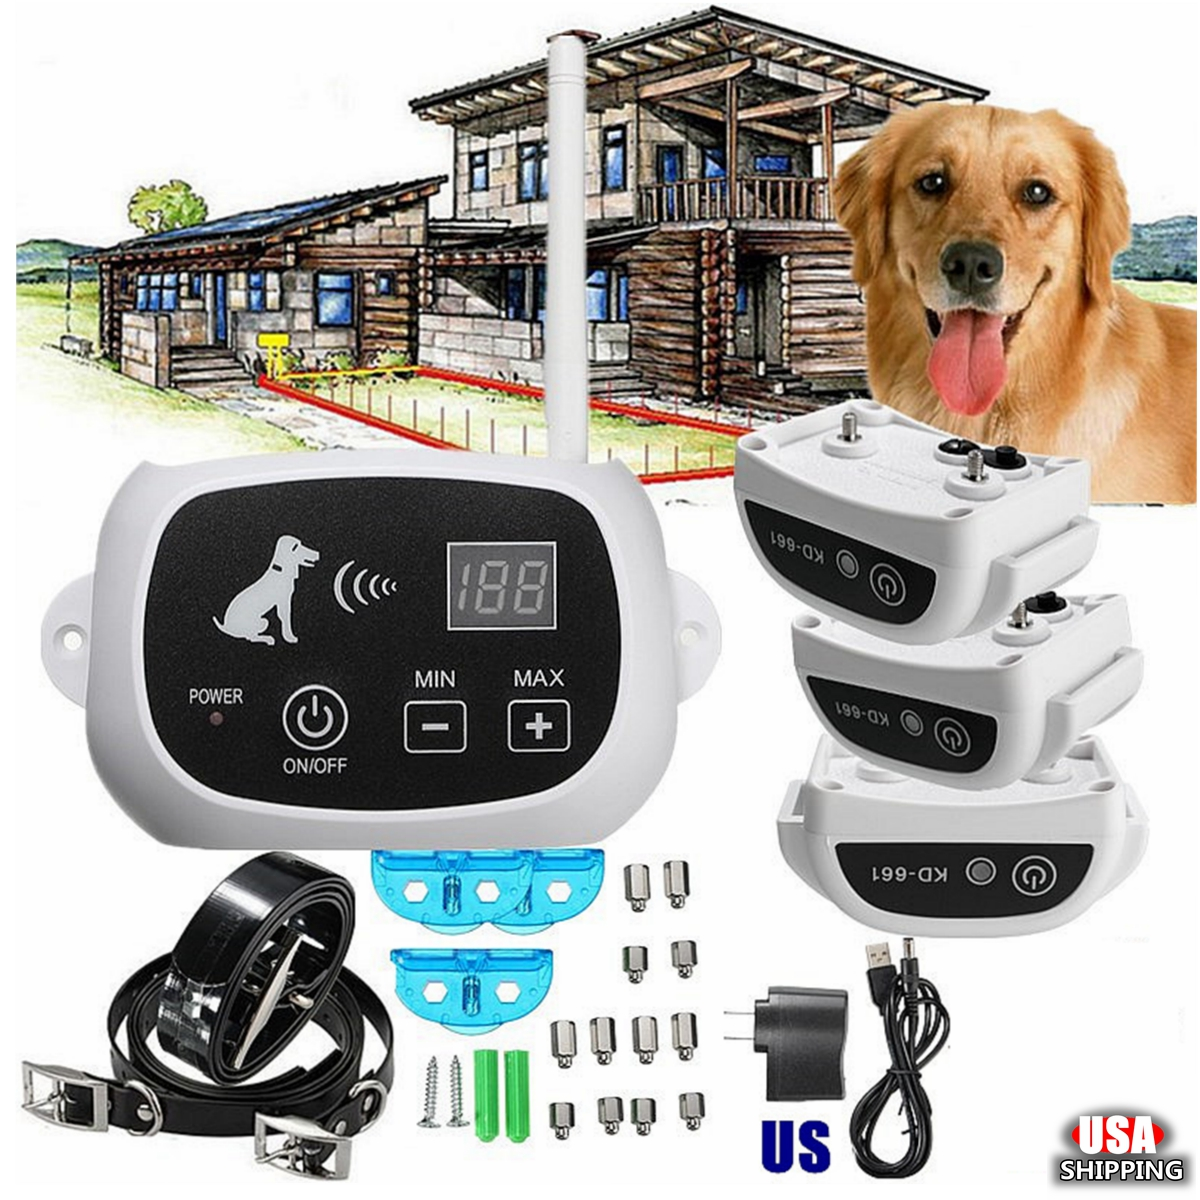 ELEGIANT Wireless Remote 3 Dog Fence No-Wire Training Pet Containment System Rechargeable,US plug color US Plug